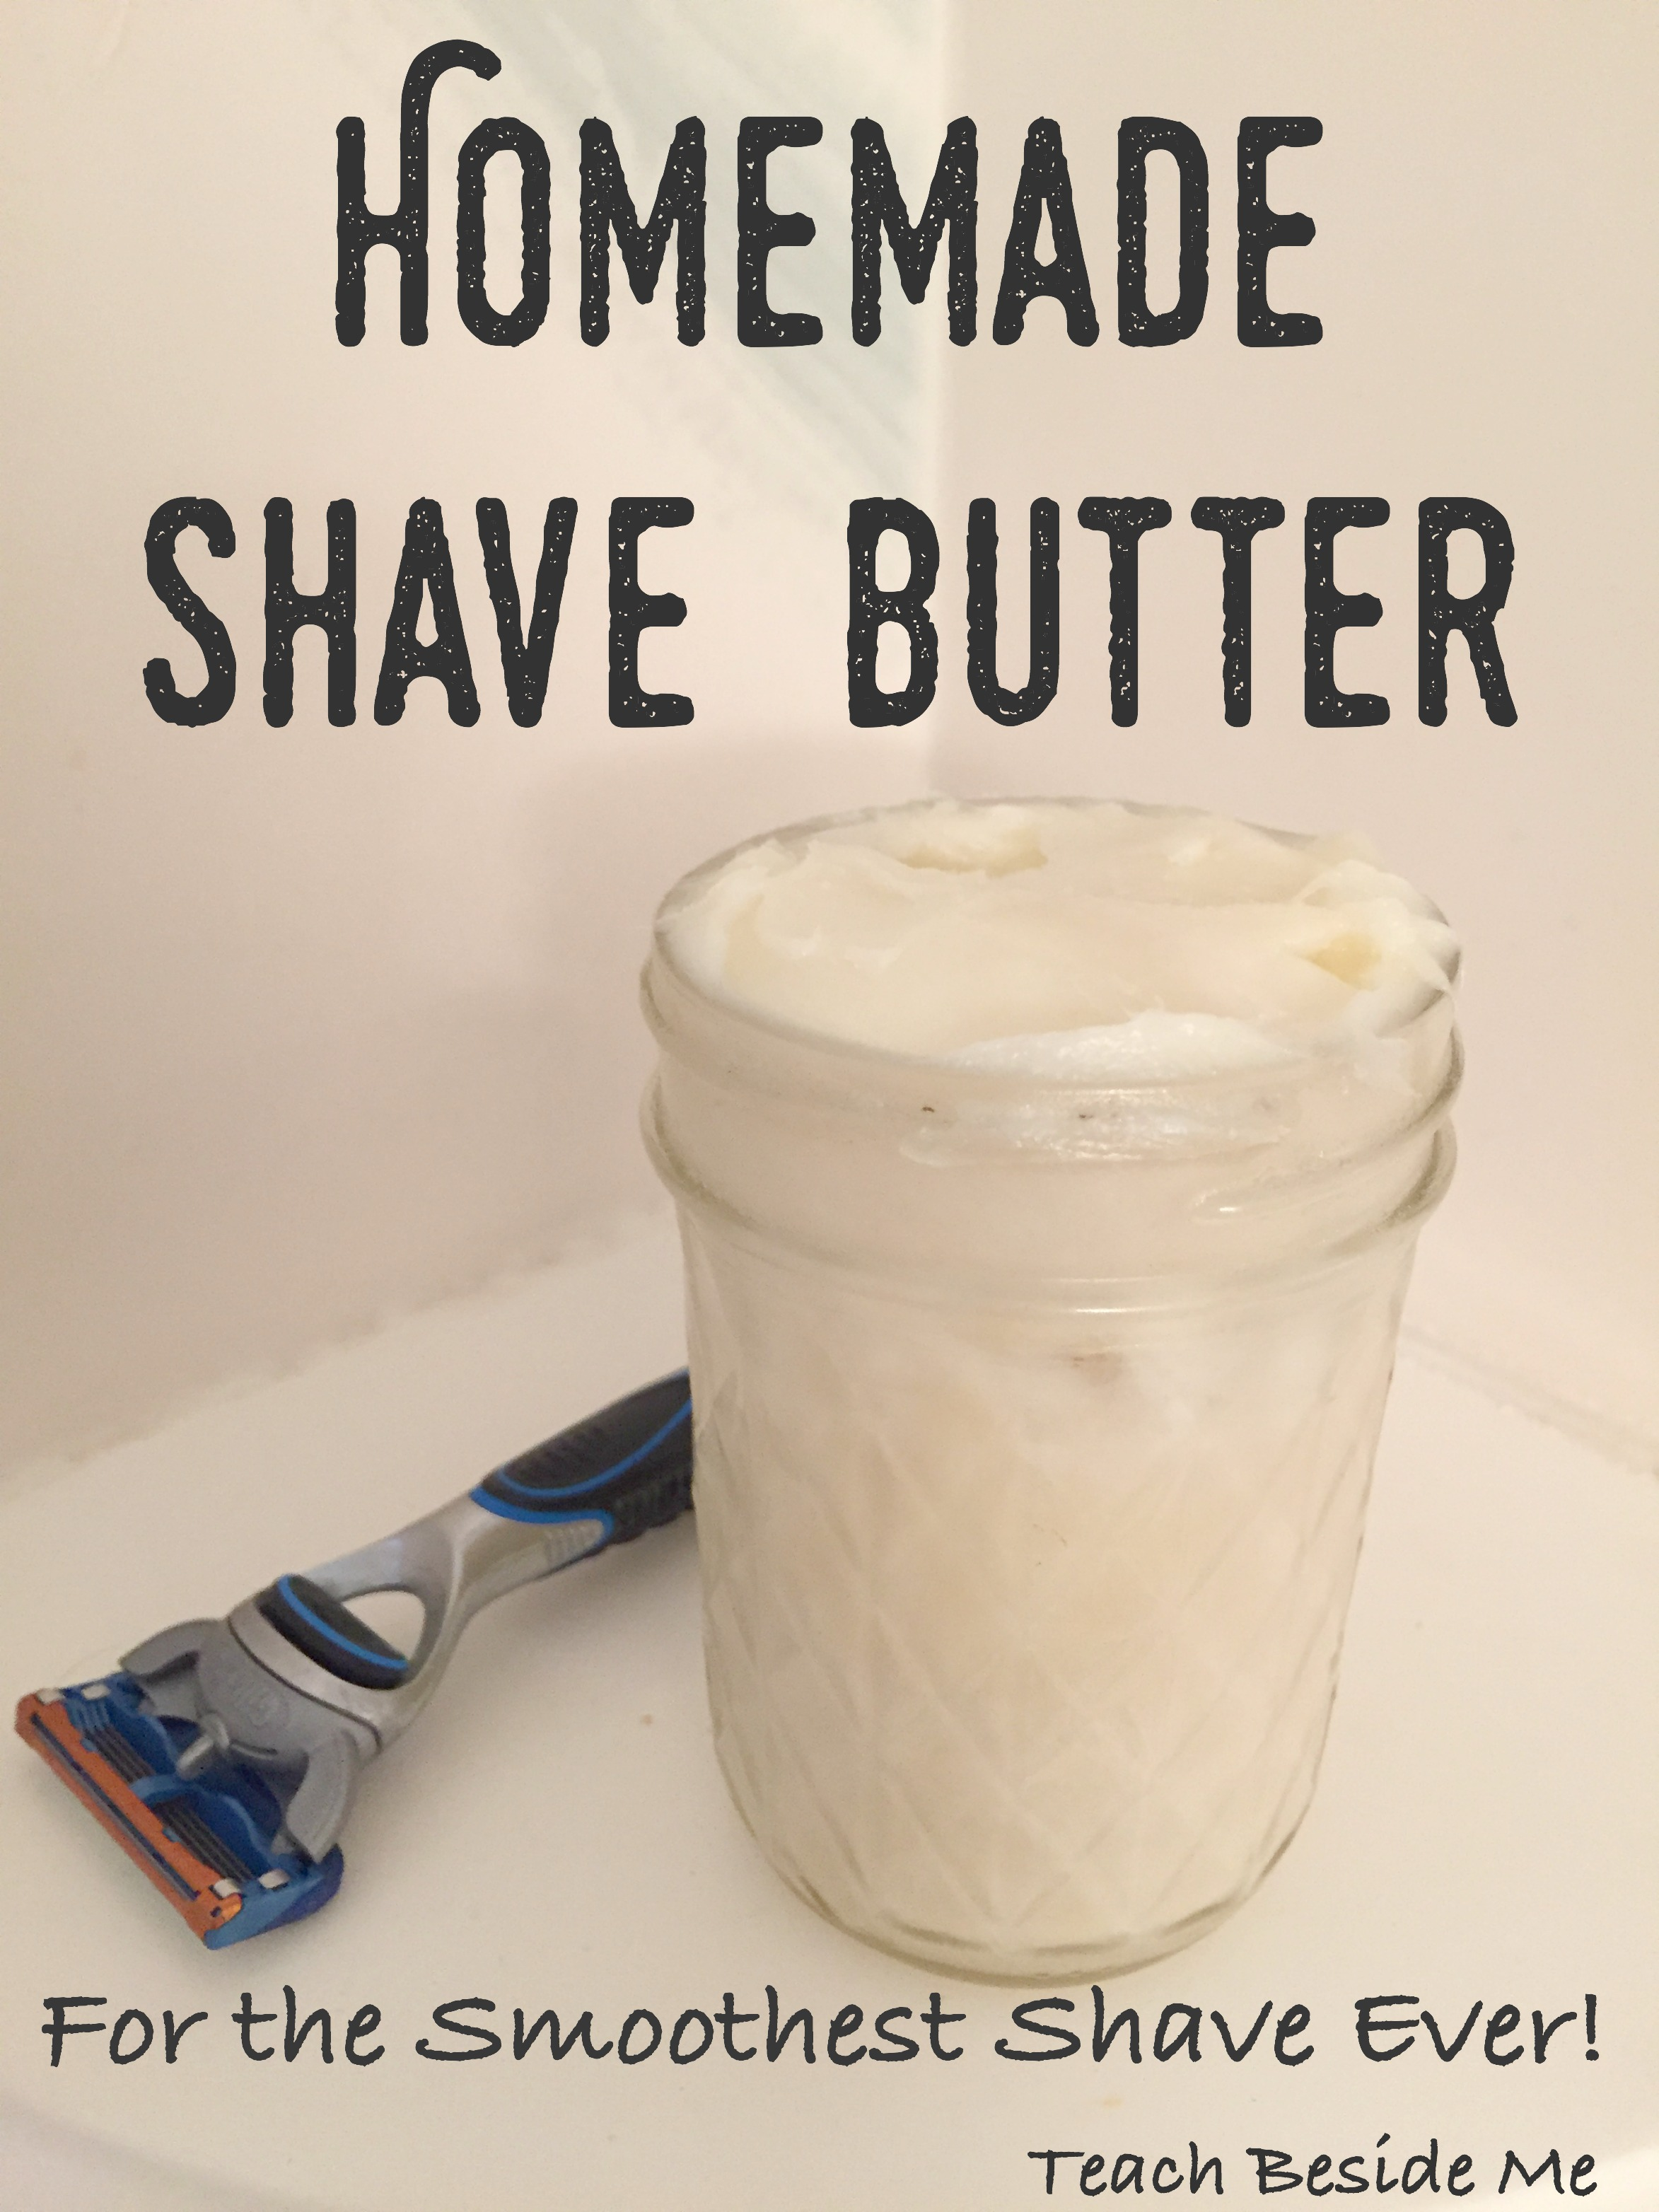 Easy homemade shave butter for mom or dad teach beside me for Homemade gifts in a jar for men